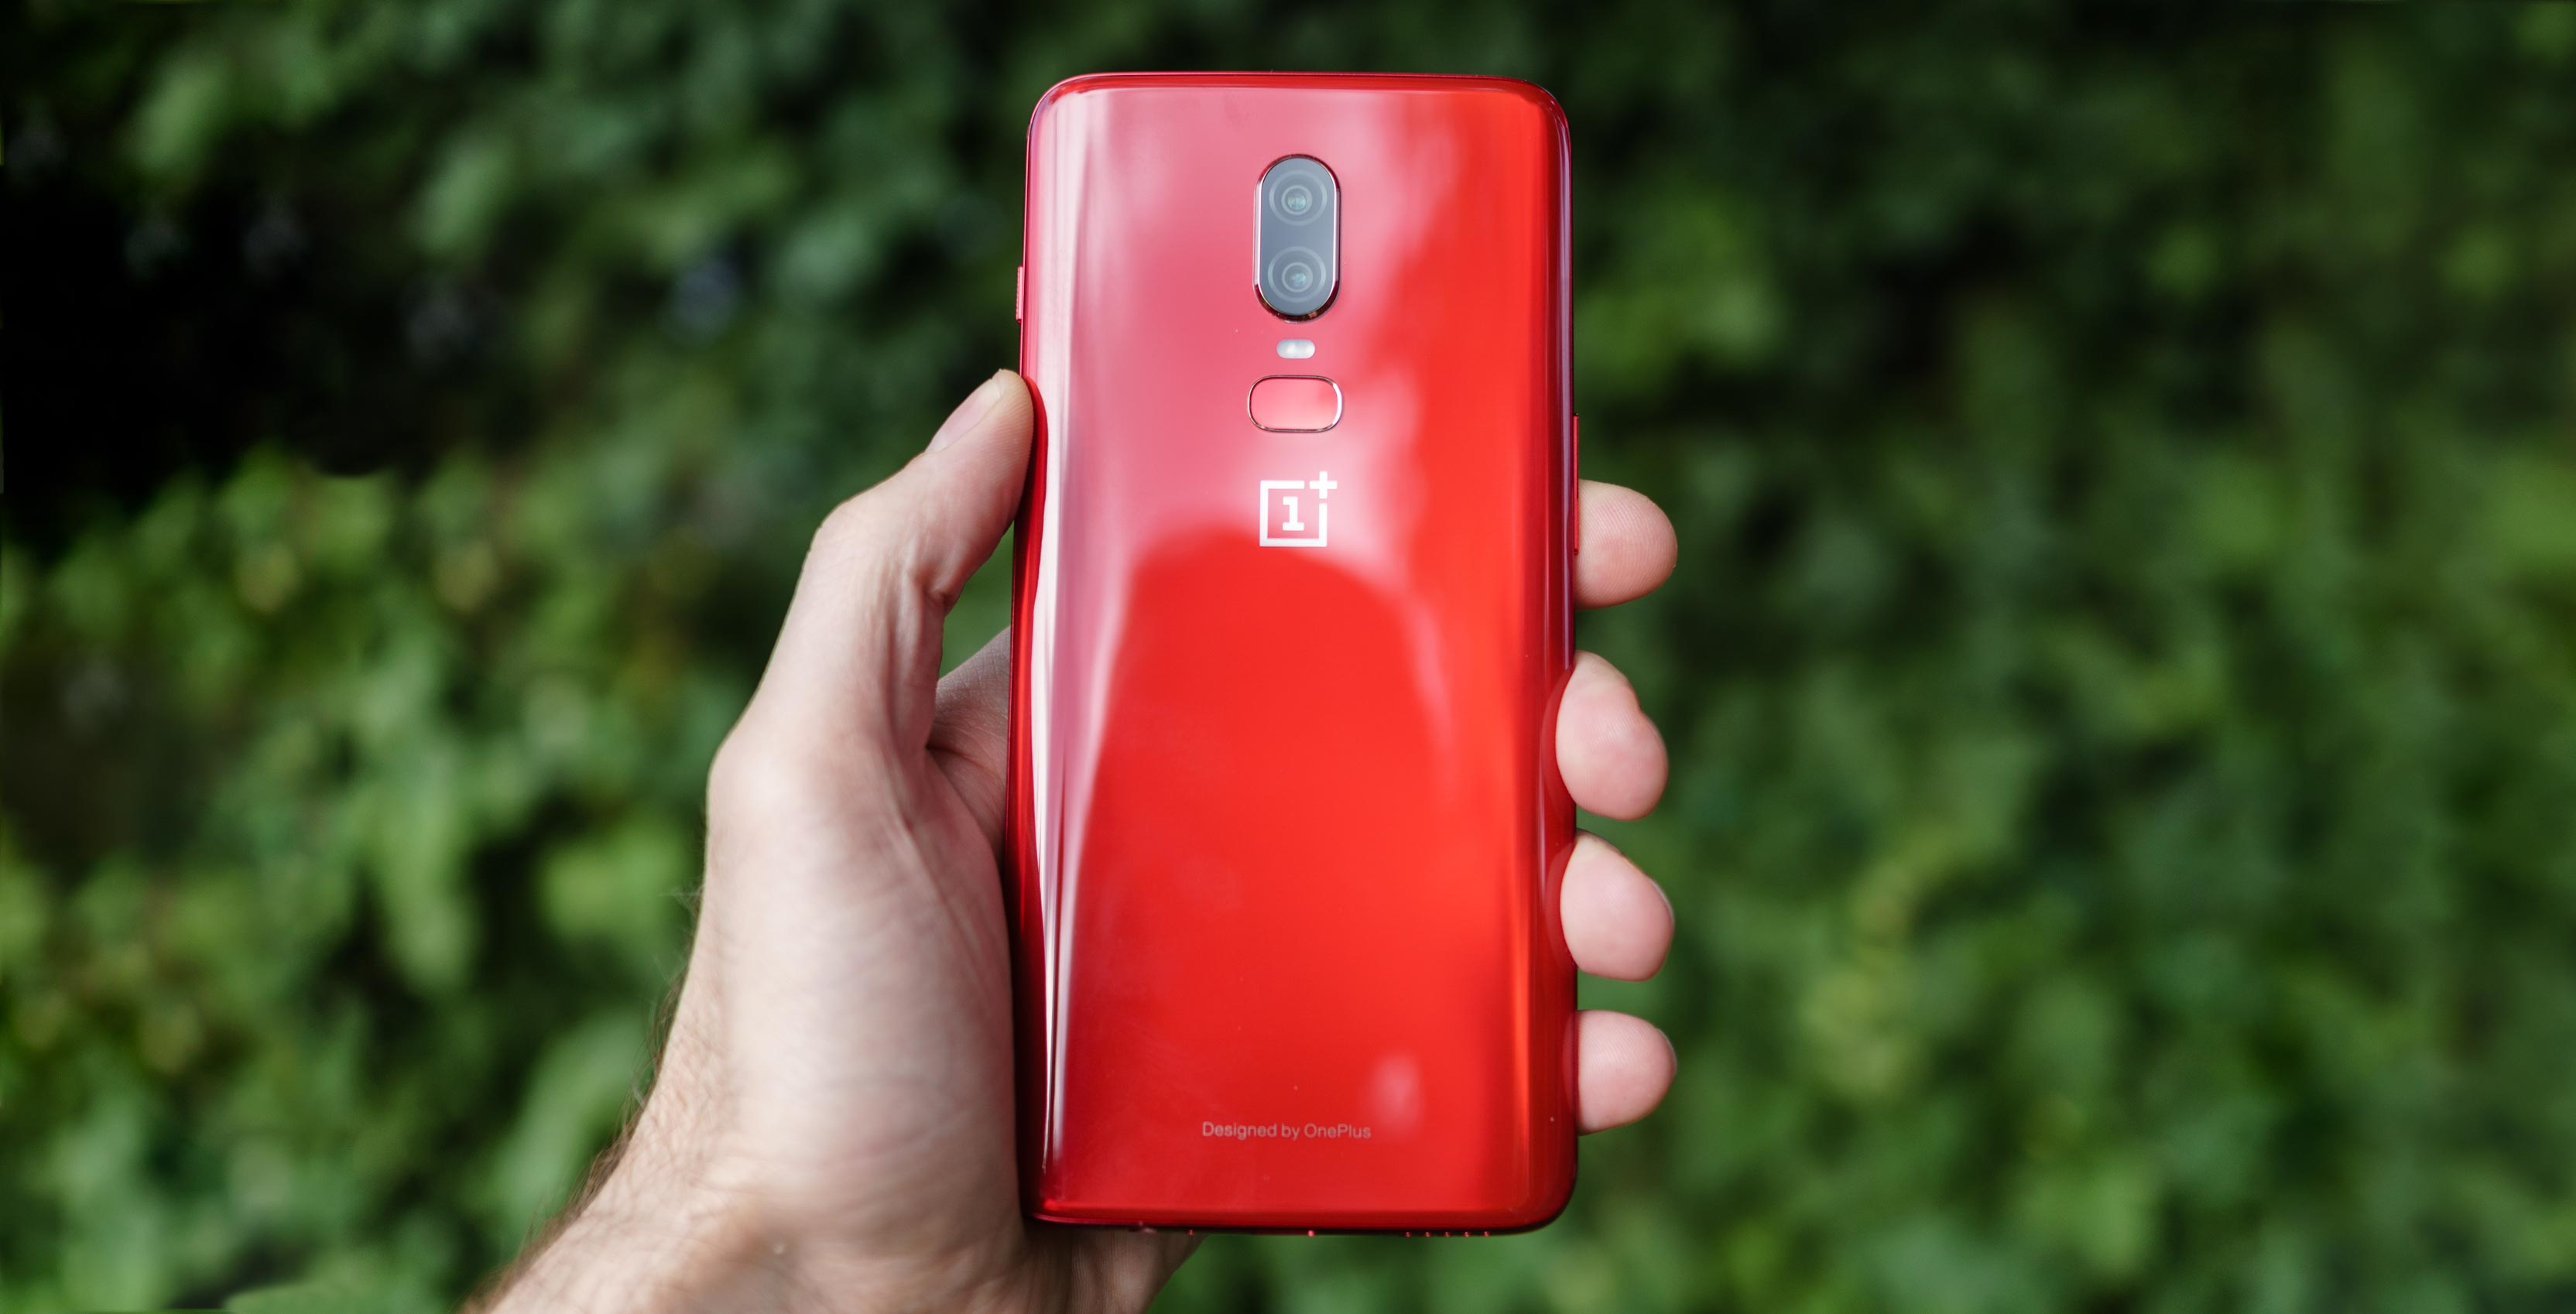 OnePlus 6T To Have Night Mode, Better Low Light Photo